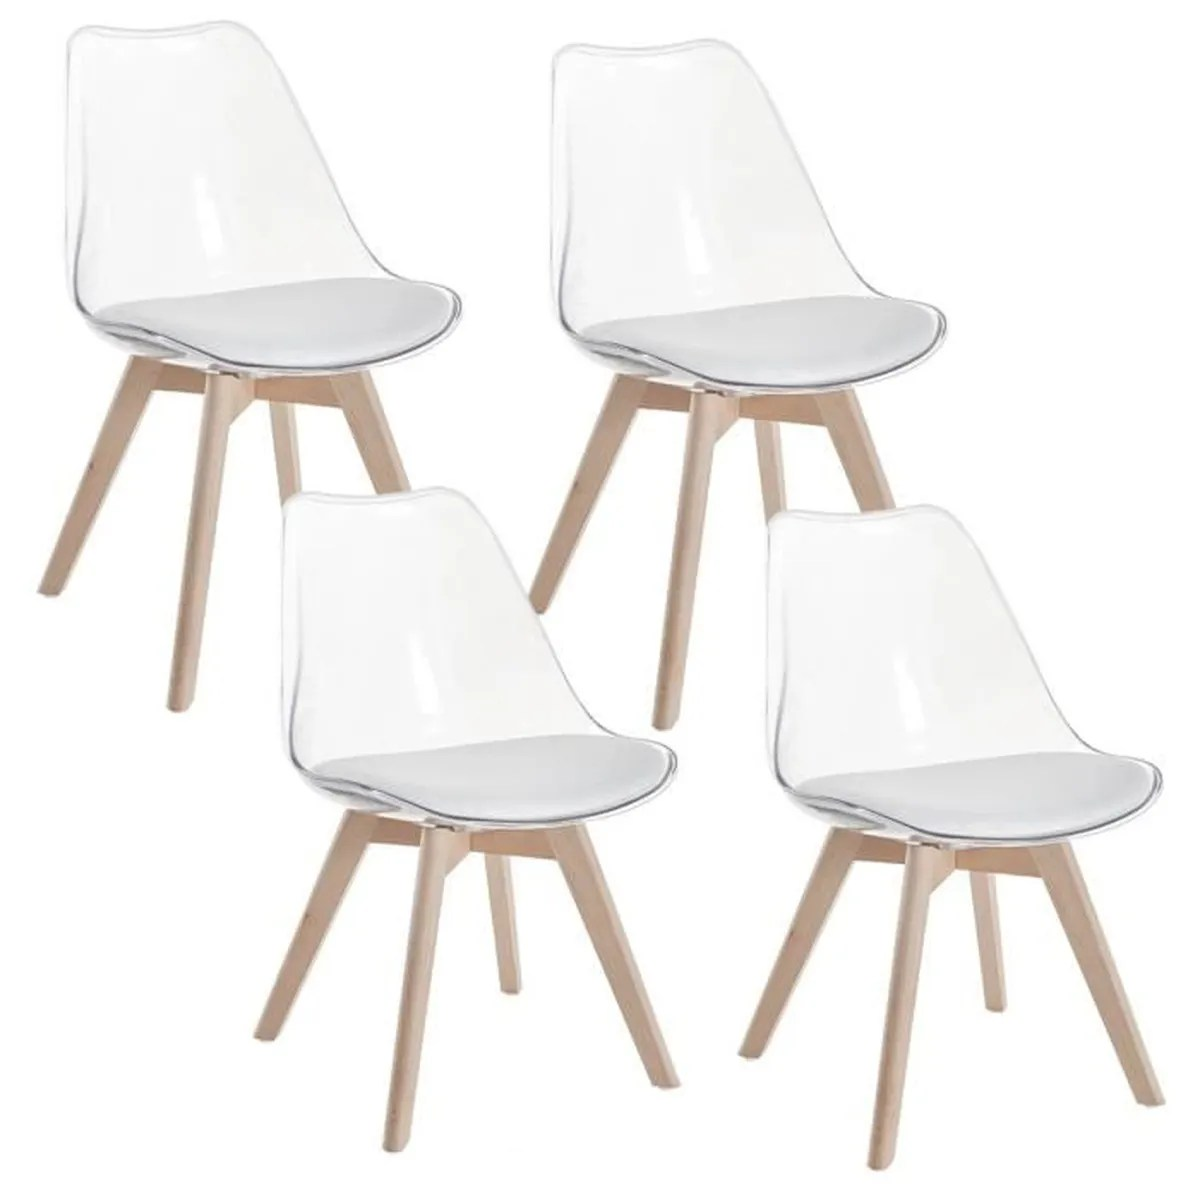 Lot 4 Chaises Transparentes Lot De 4 Chaises Scandinaves Transparentes Blanc Gala Achat